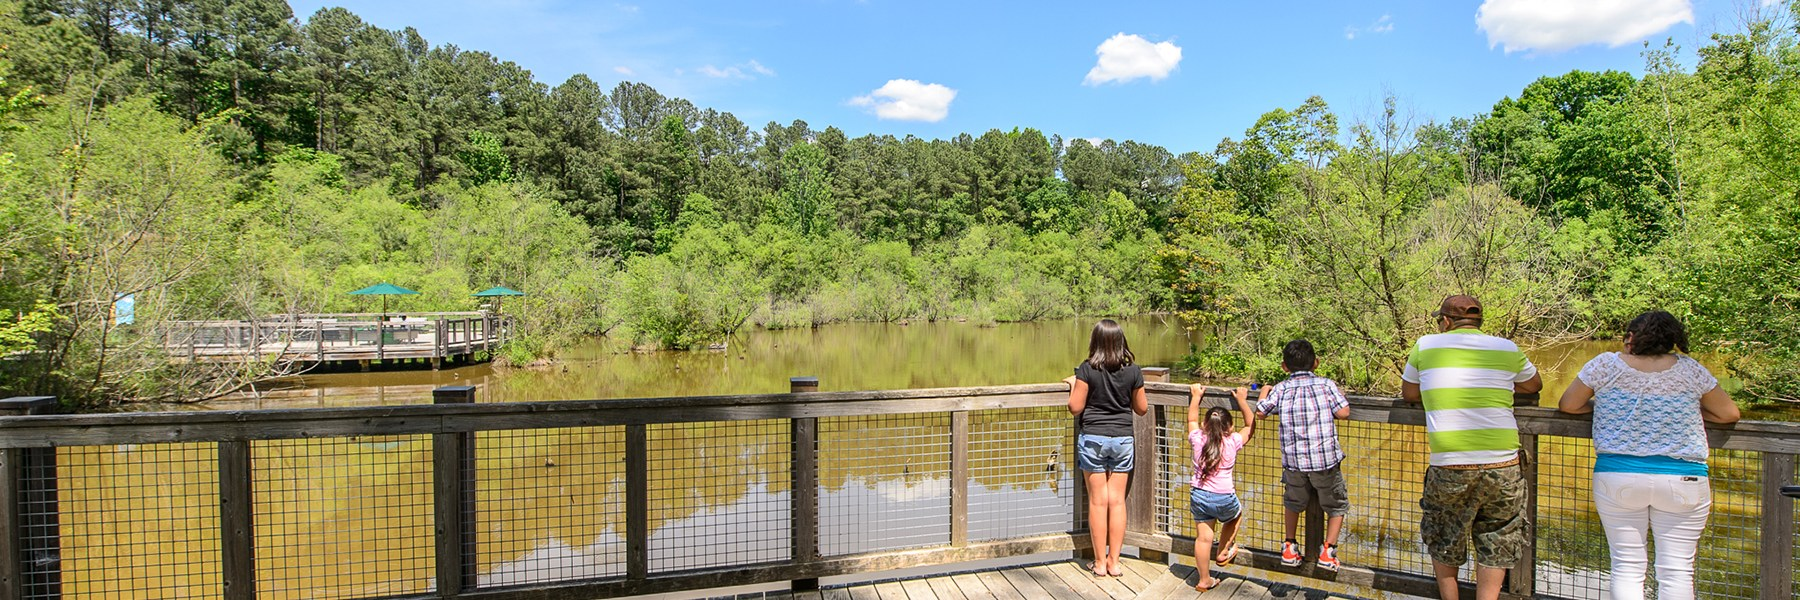 Group of adults and kids stand on Wetland deck looking into water